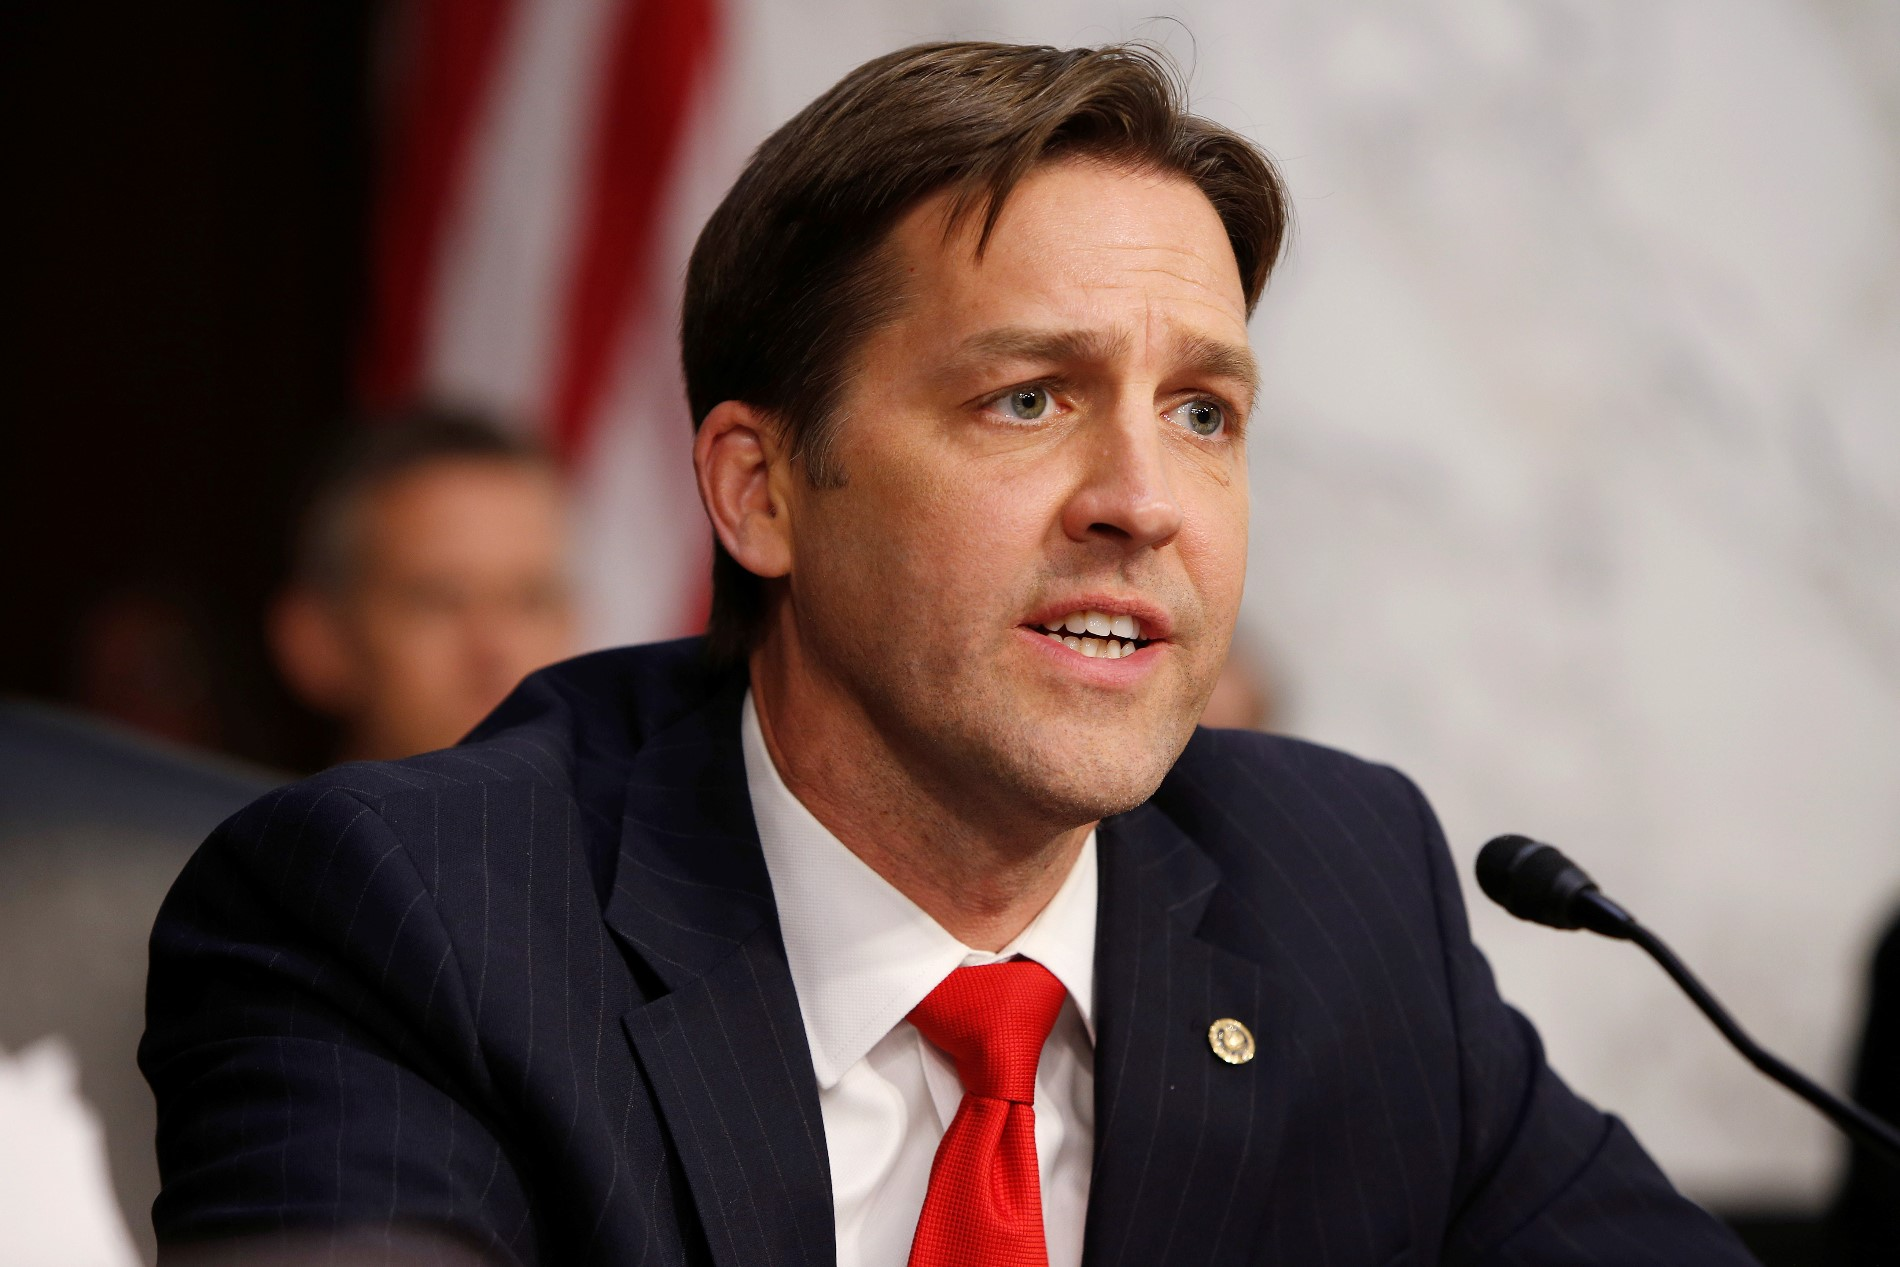 Westlake Legal Group rtx322k7 Sasse leads fresh calls to use seized 'El Chapo' money to pay for border security fox-news/us/immigration/border-security fox-news/us/crime/drugs fox-news/politics/senate/republicans fox-news/politics/executive/homeland-security fox-news/person/ted-cruz fox news fnc/politics fnc article 22d83737-69d8-5042-aad3-82a3d614eb6d